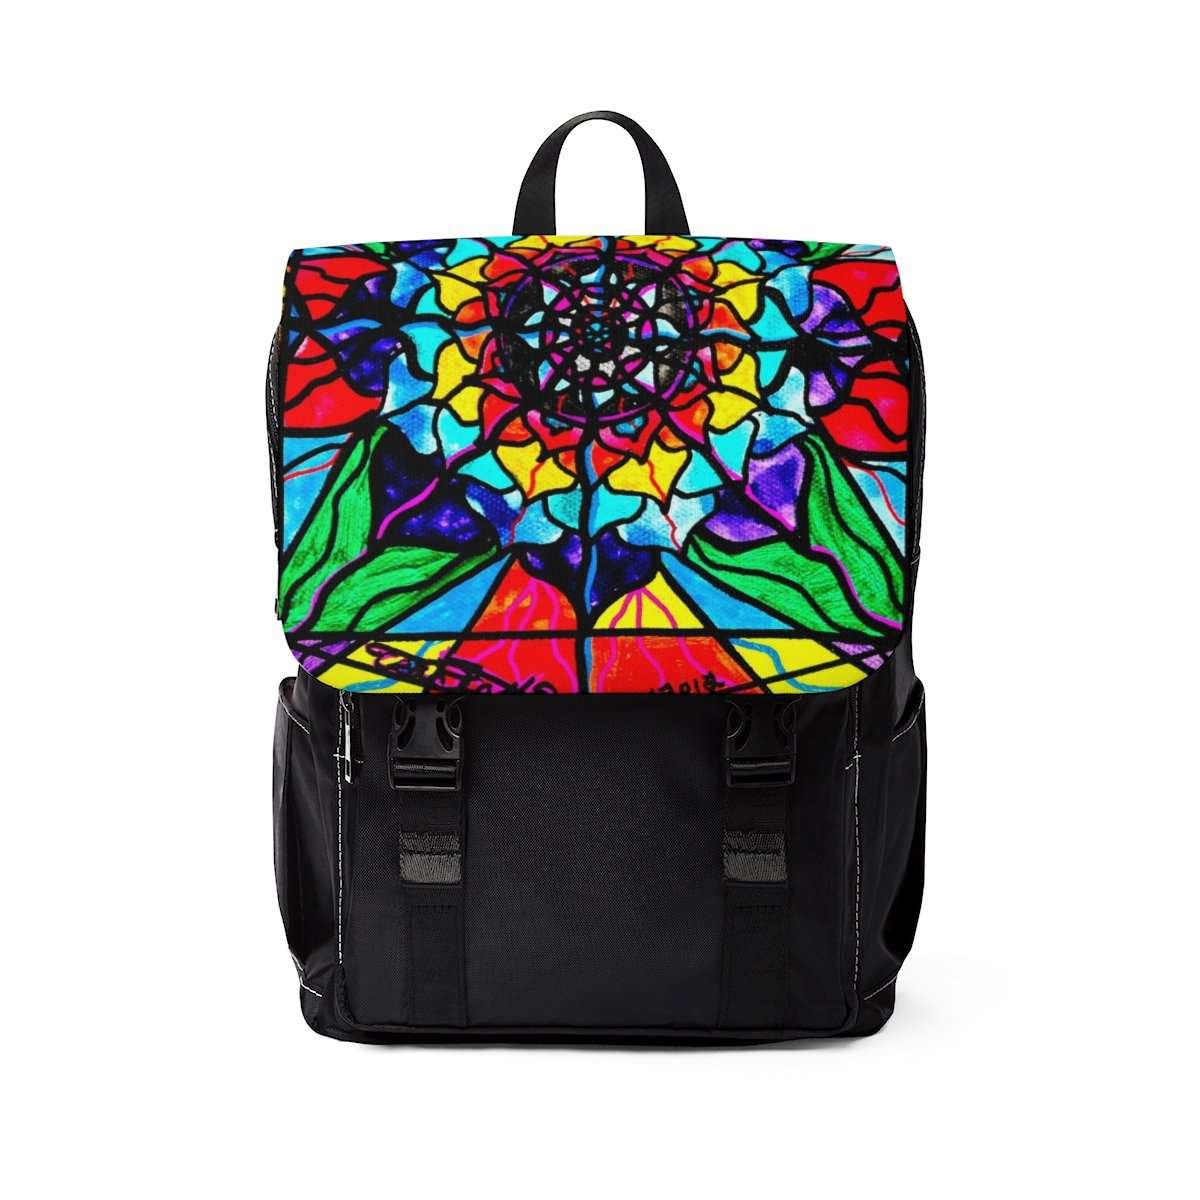 Personal Expansion - Unisex Casual Shoulder Backpack